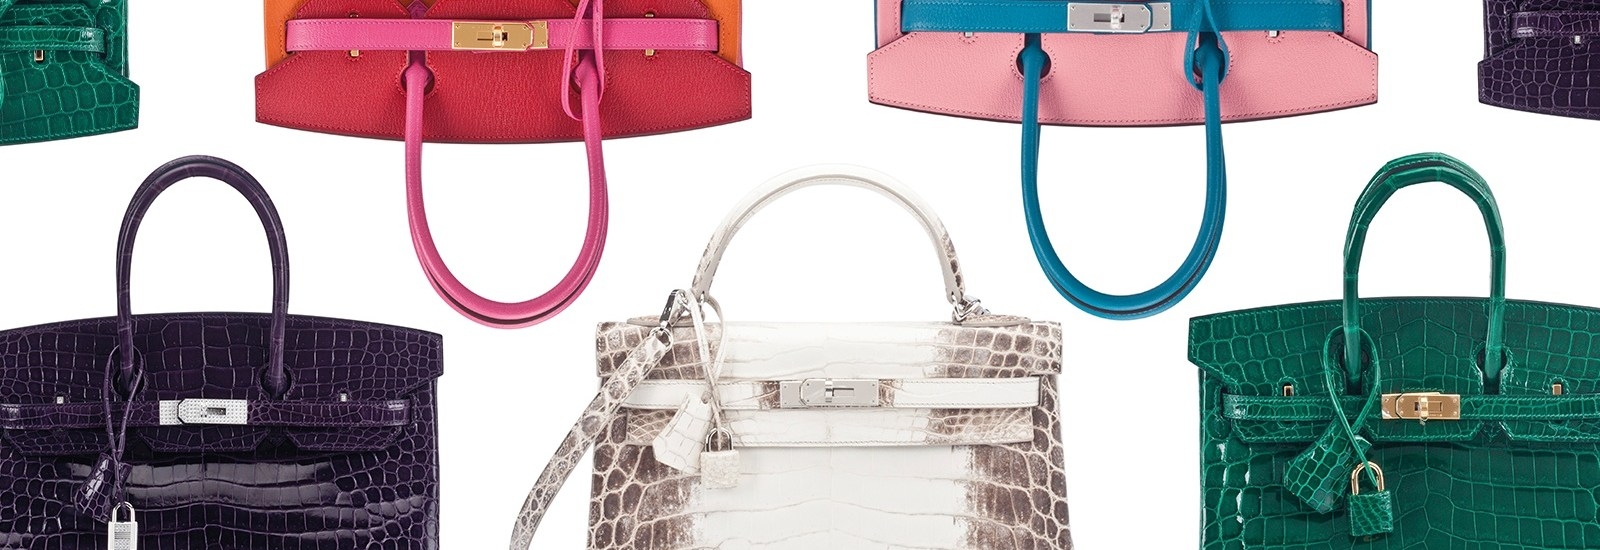 acf954613a16 The Inaugural Handbags Sale at Christie s New York - Christie s ...